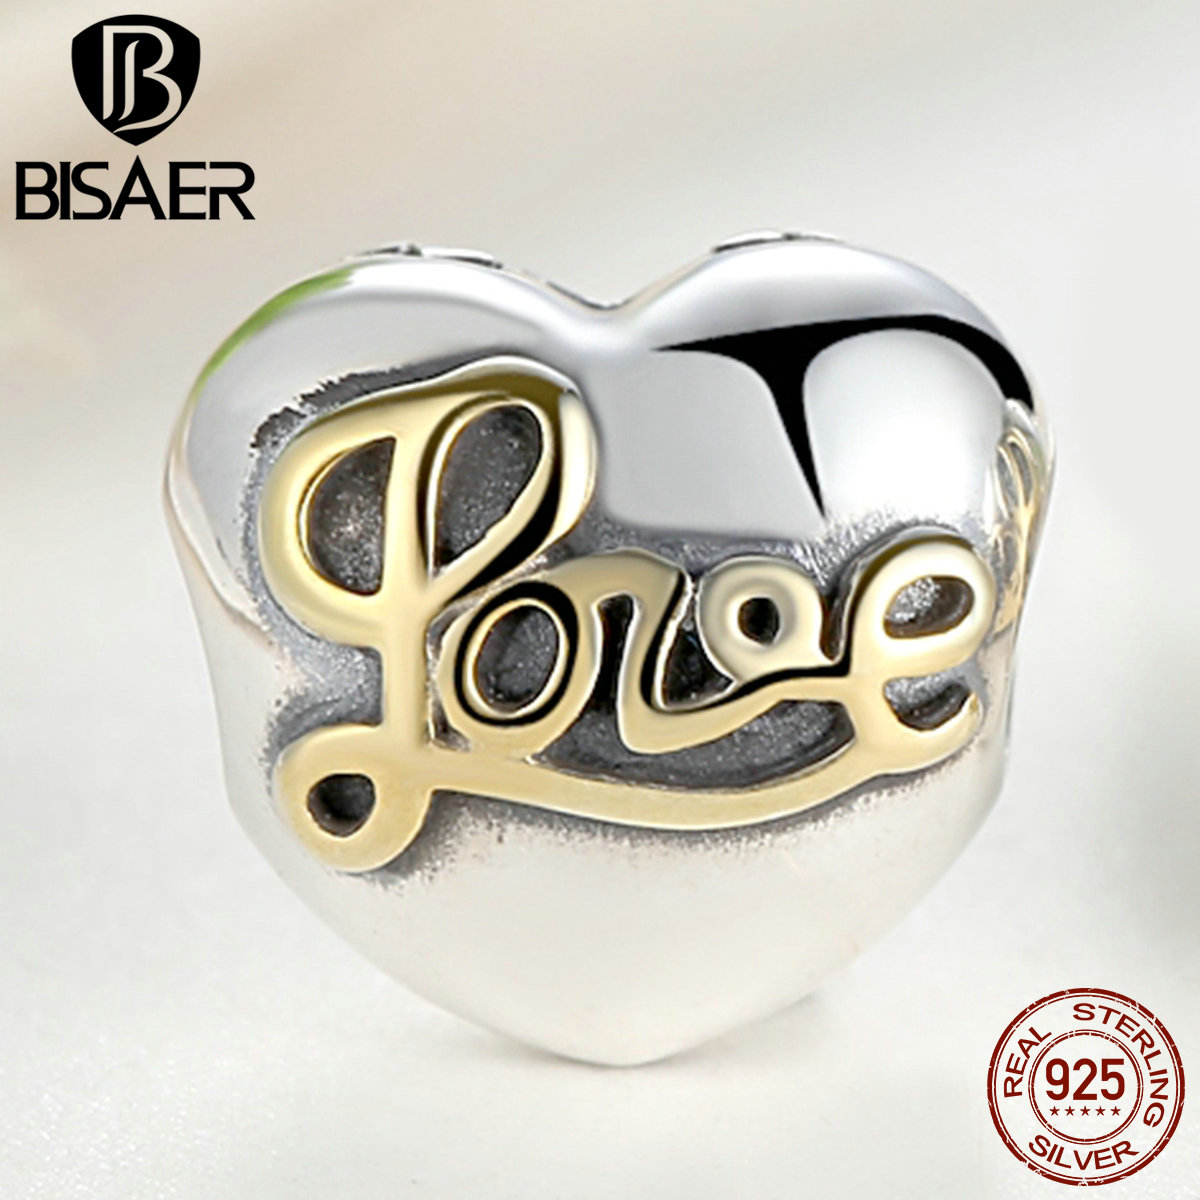 BISAER High Quality 925 Sterling Silver Love Heart Clip Charm Fit Pandora Original Bracelet DIY Beads Jewelry Making(China (Mainland))